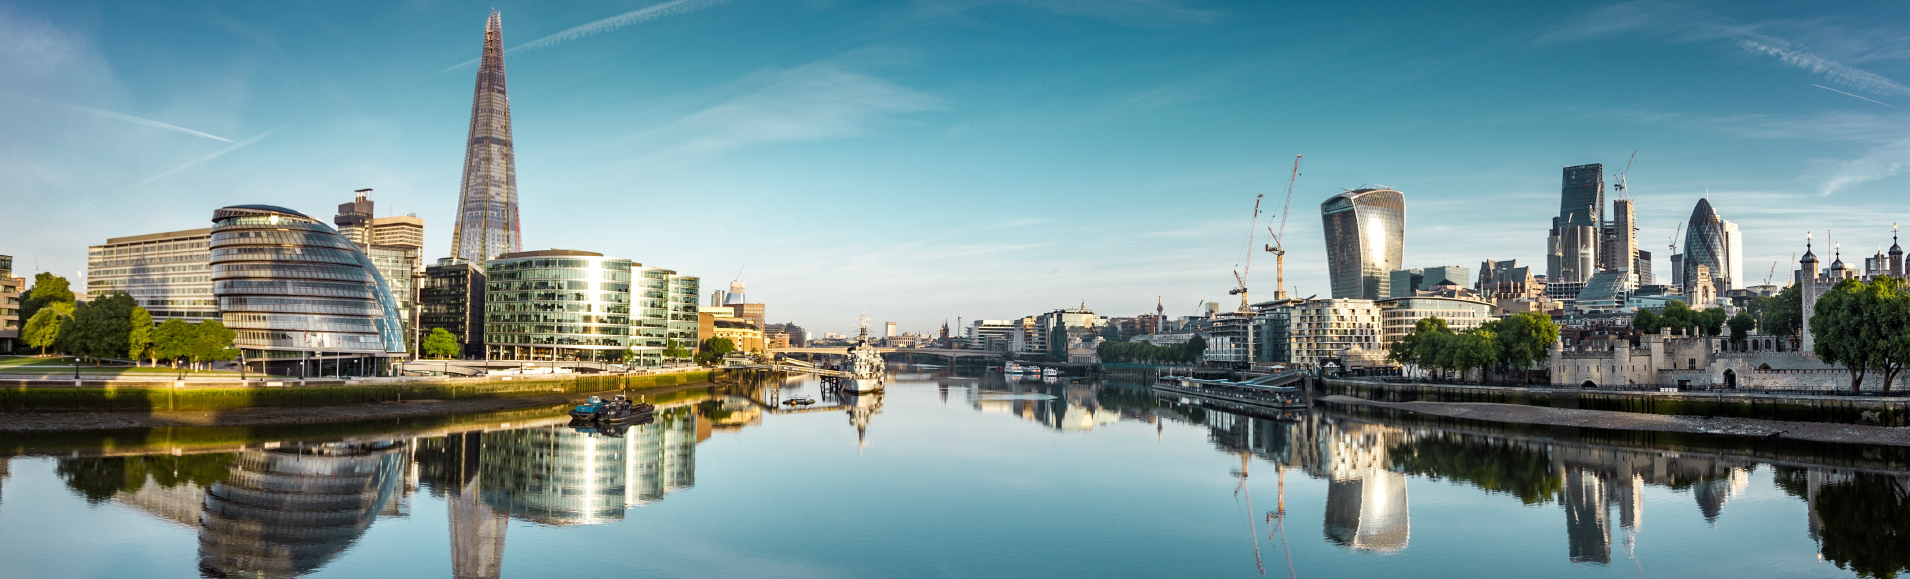 A panoramic view of London Bridge, City Hall, HMS Belfast and the City from the river, on a very sunny day in London.